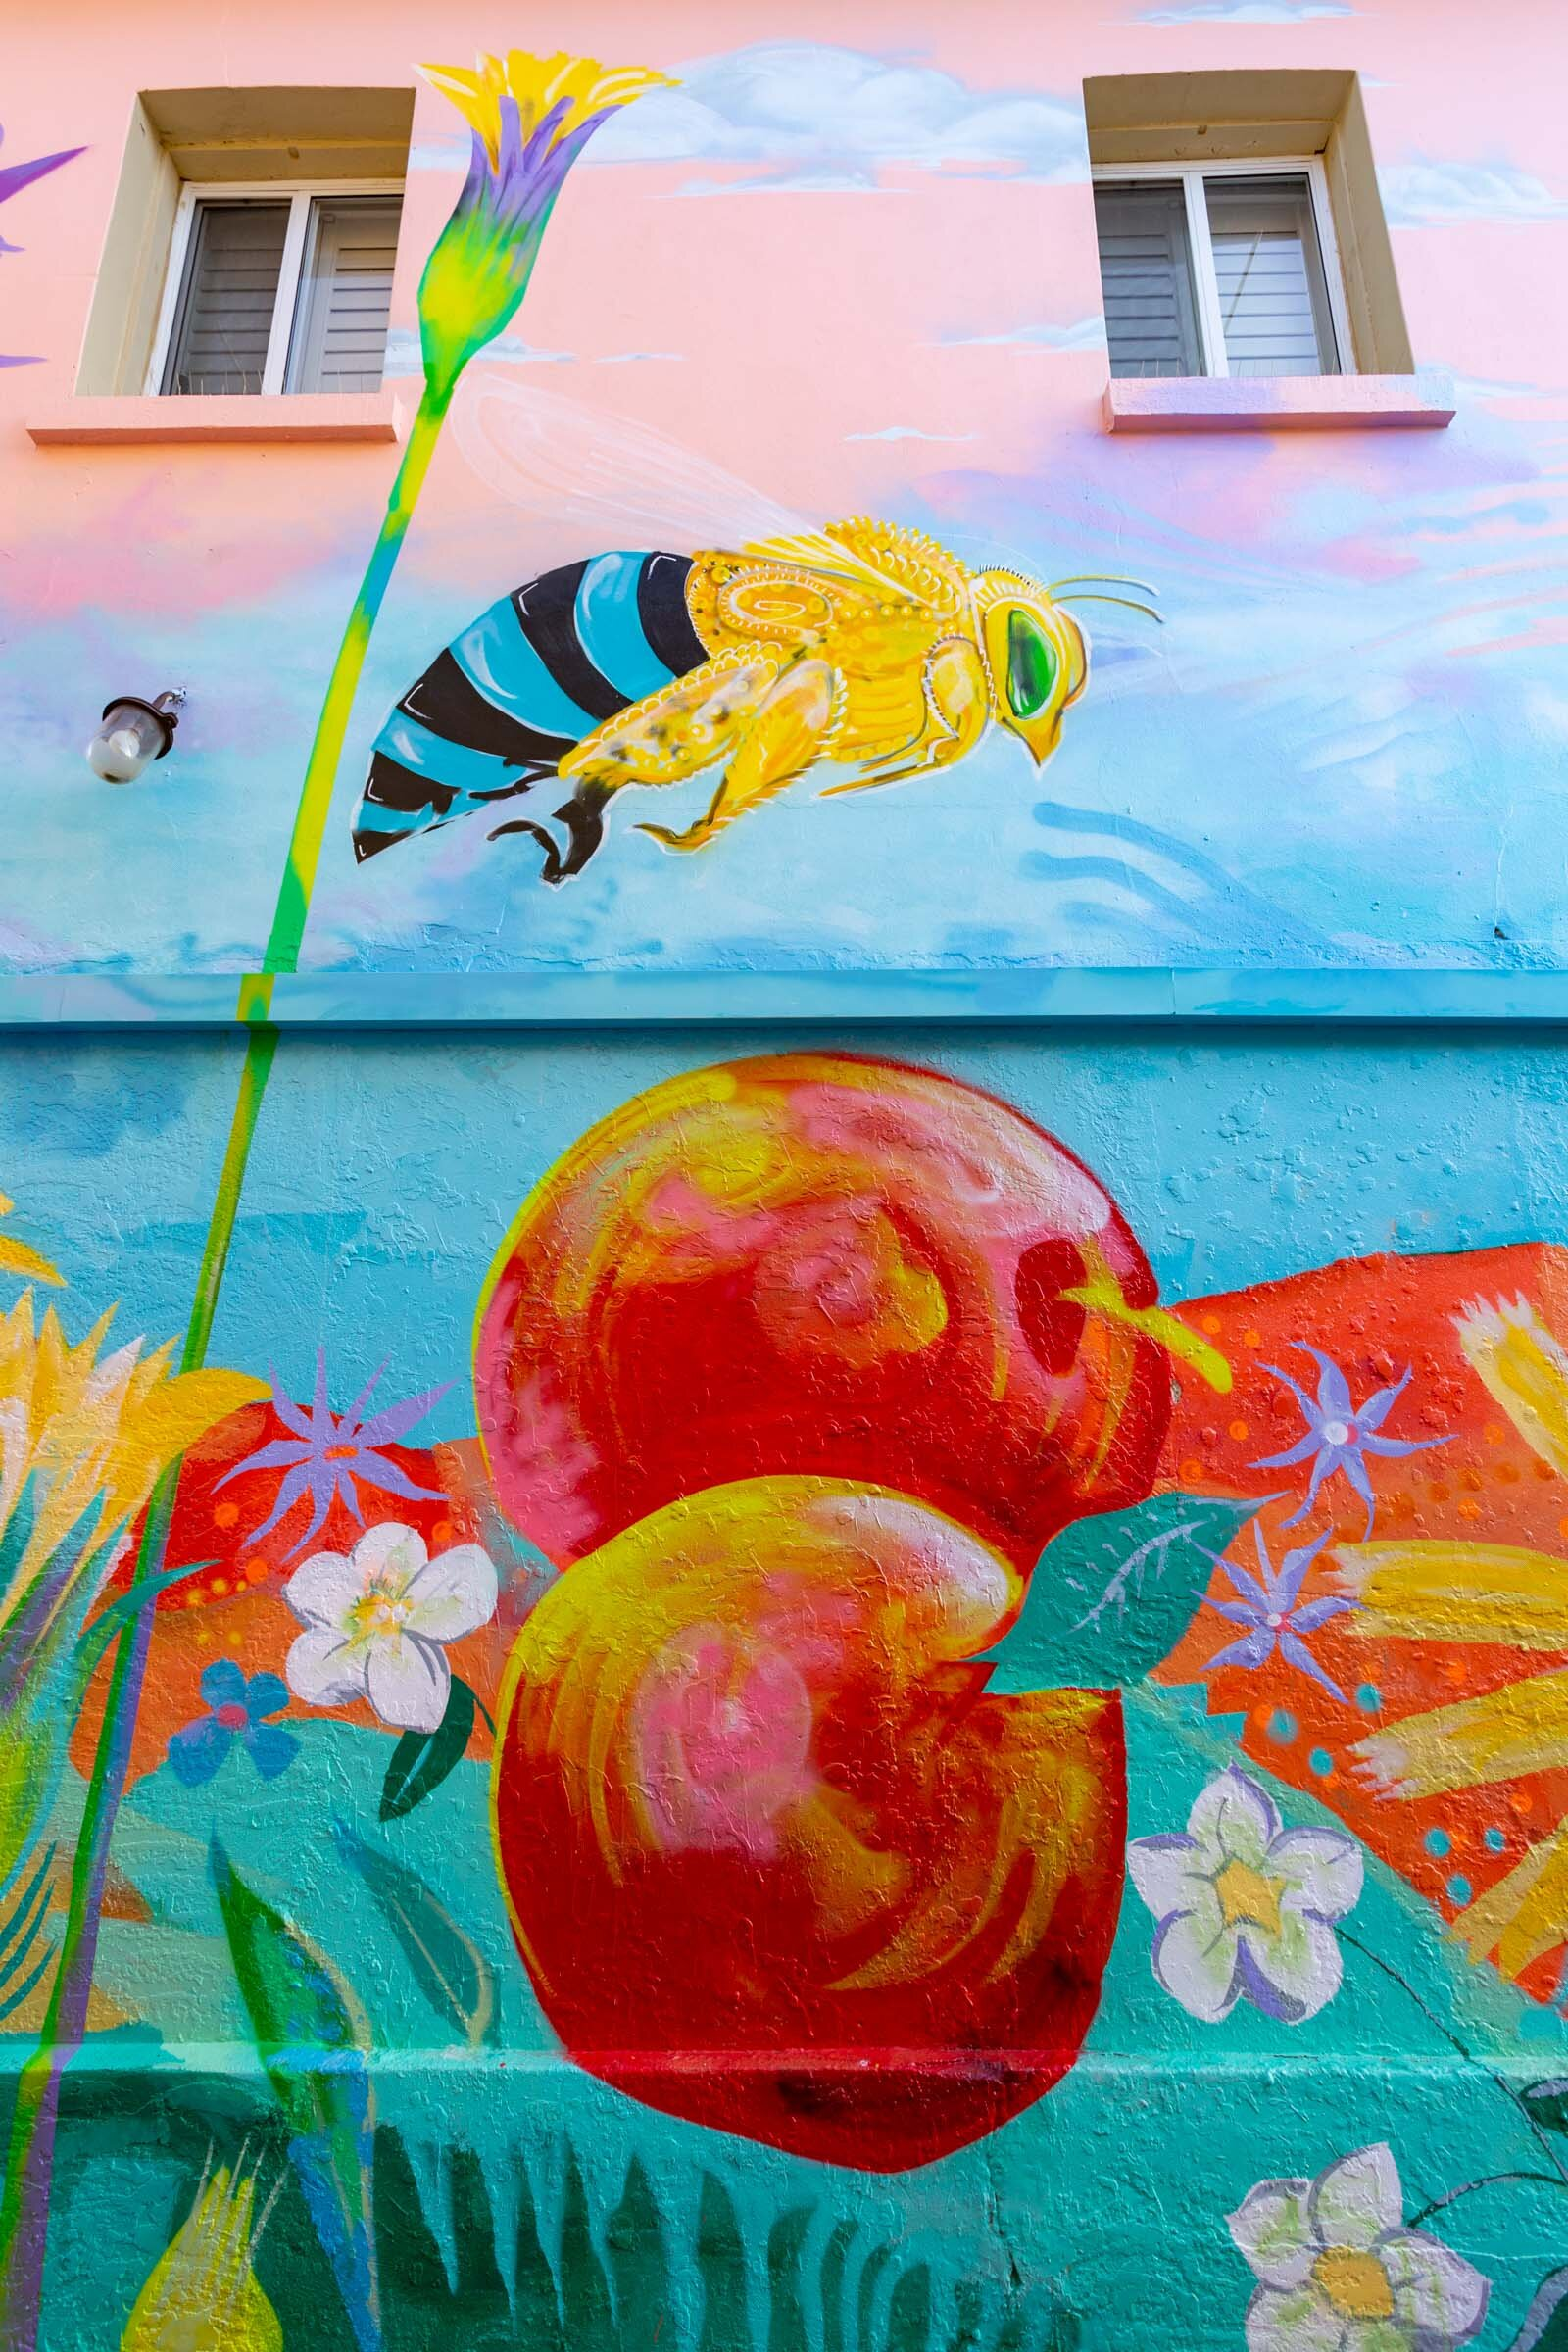 David and Noni Cragg's mural in Windsor. Image credit: Art Pharmacy Consulting / Jodie Barker